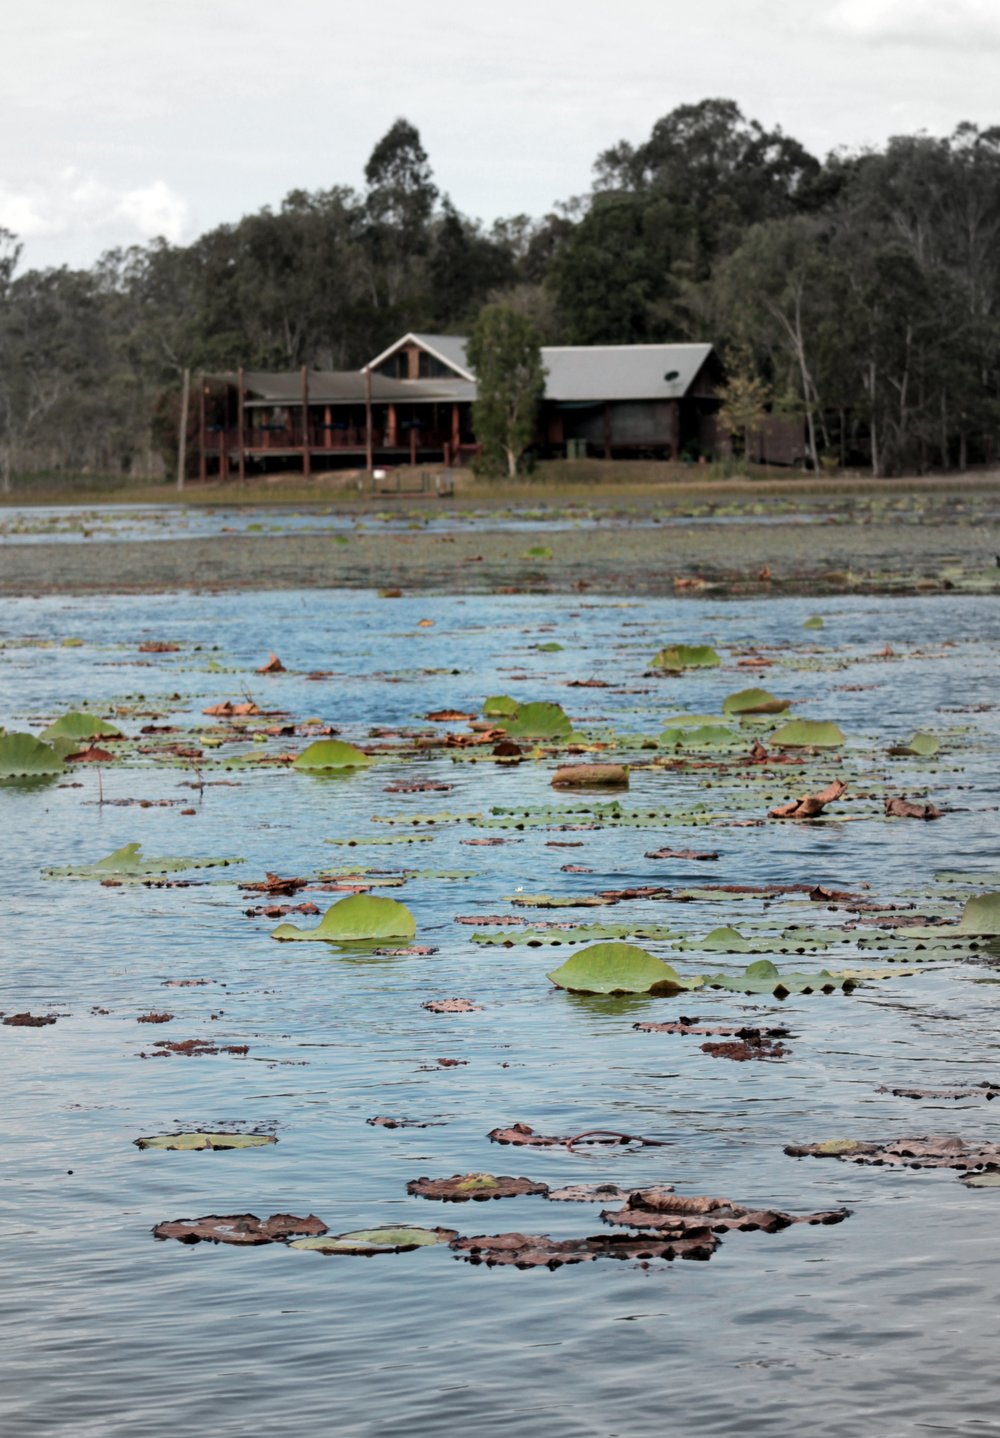 The lagoon and its lilypads by boat.